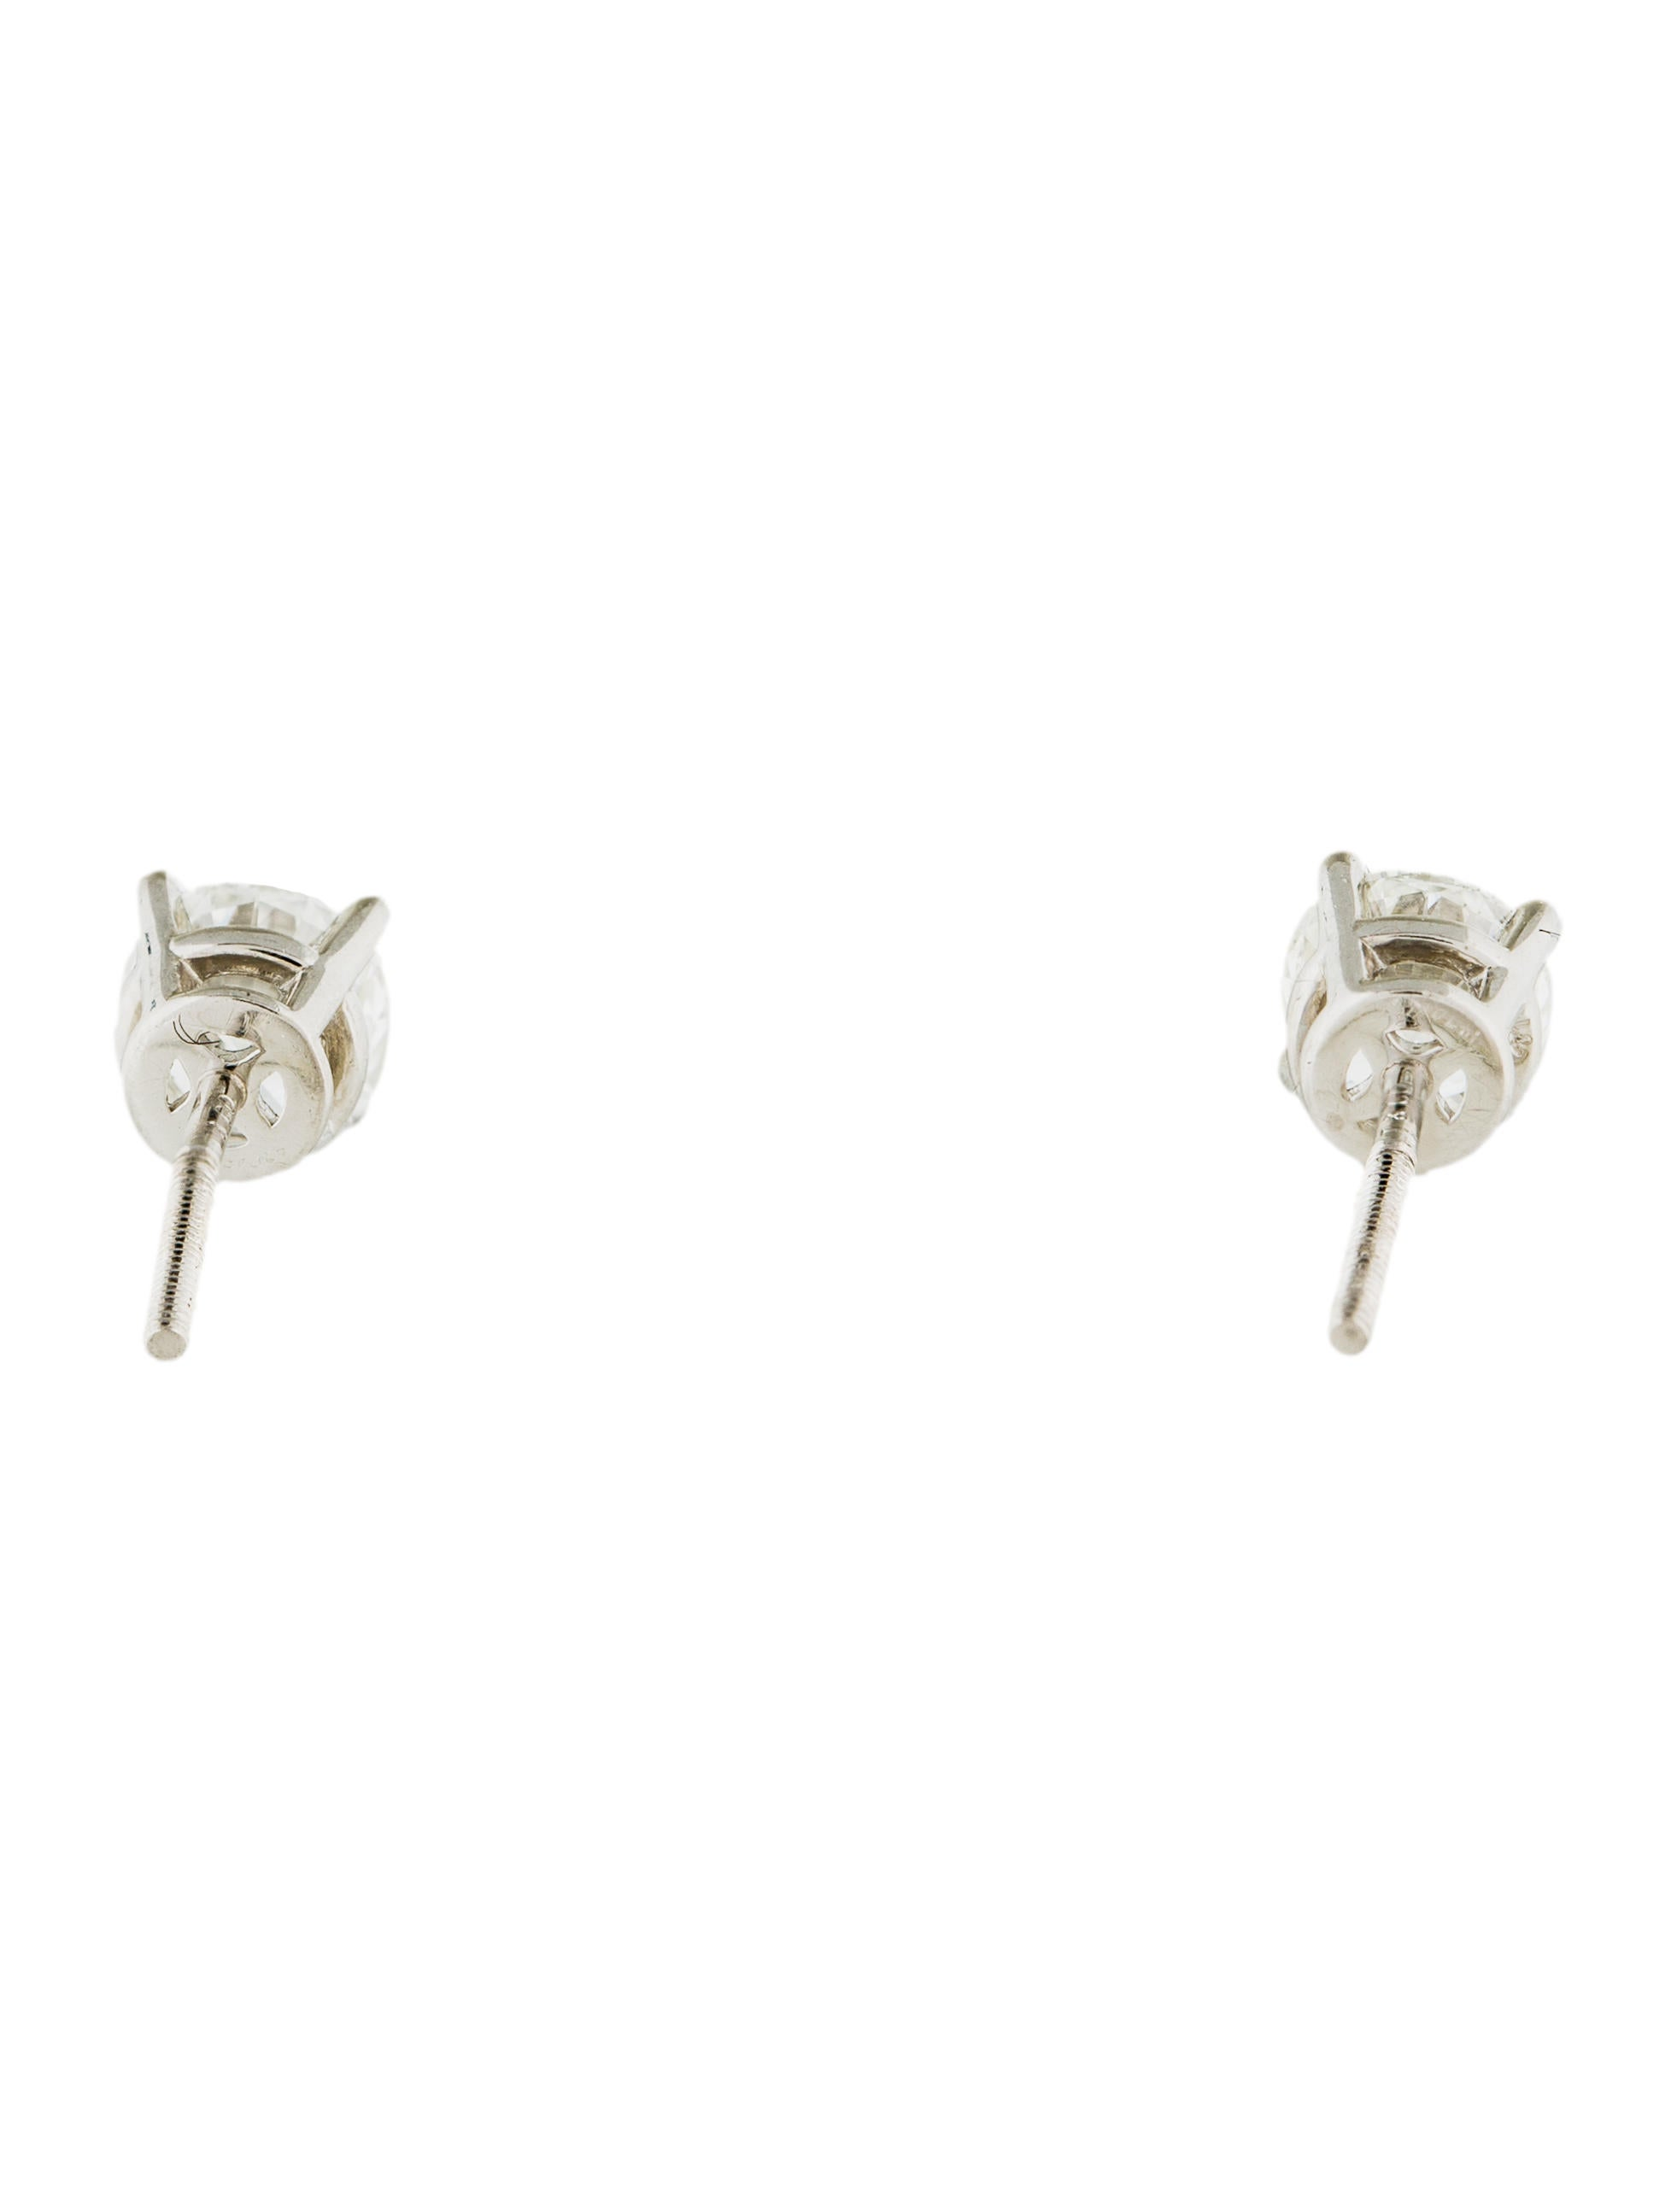 gemstone canadian solitaire diamond stud vancouver earrings lugaro shop online jewellery